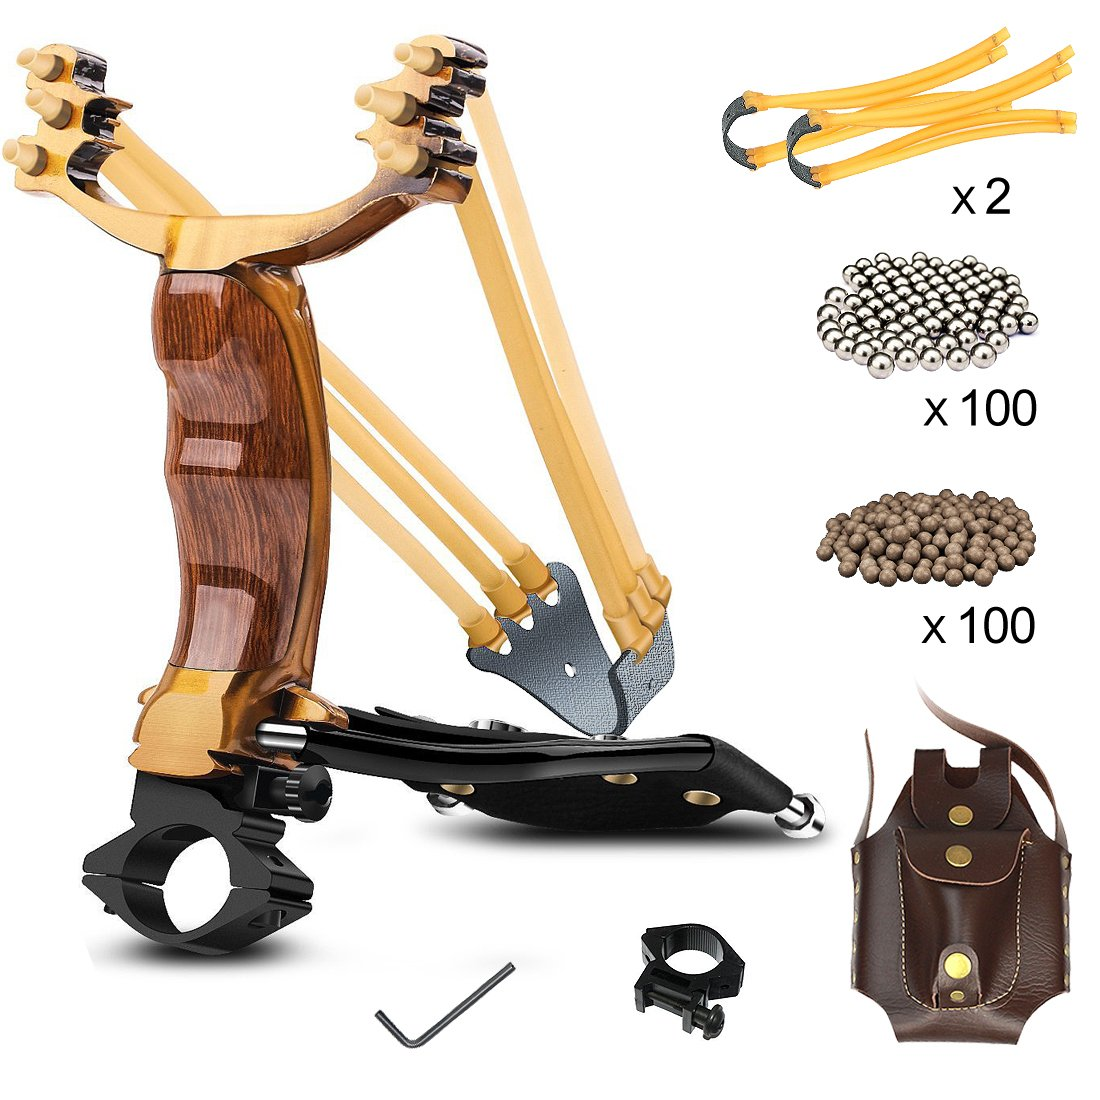 Professional Slingshot YZXLI Stainless Steel Outdoor Hunting Sling Shot High Velocity Catapult with 2 Rubber Bands and 200 Extra Slingshot Ammo by YZXLI